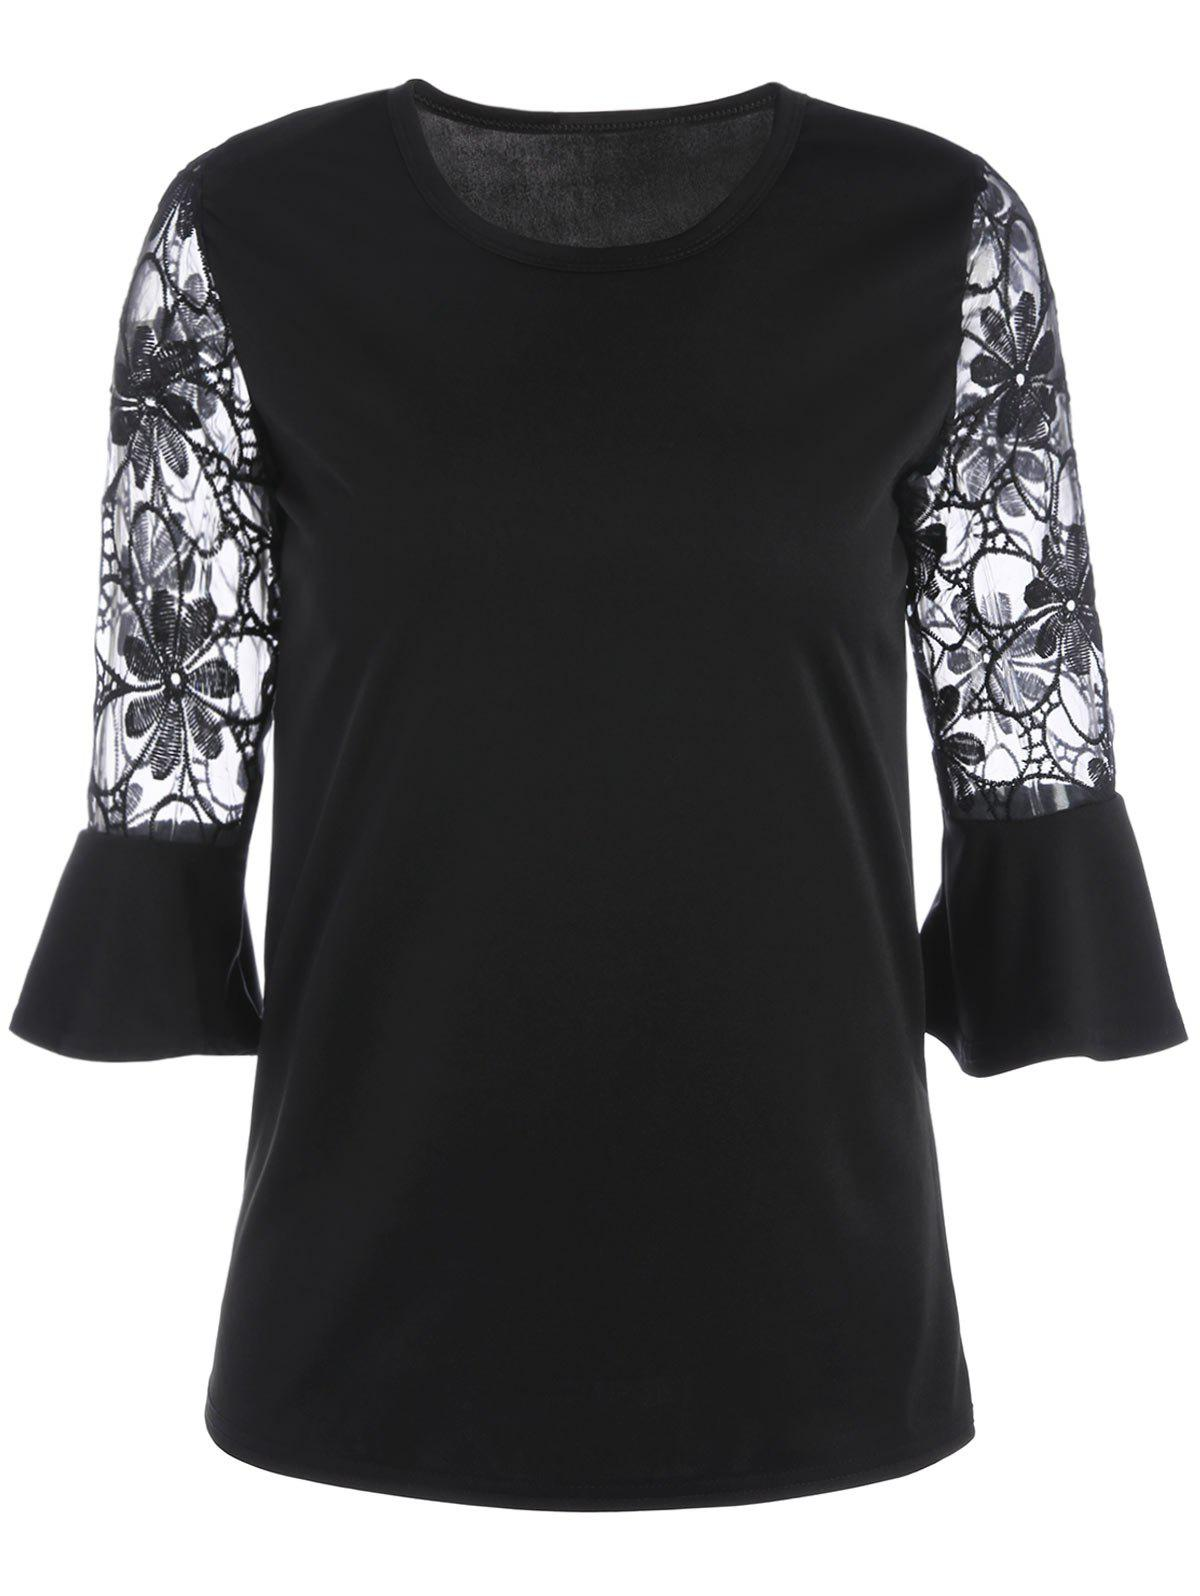 Lace Trim Flare Sleeve Blouse - BLACK L